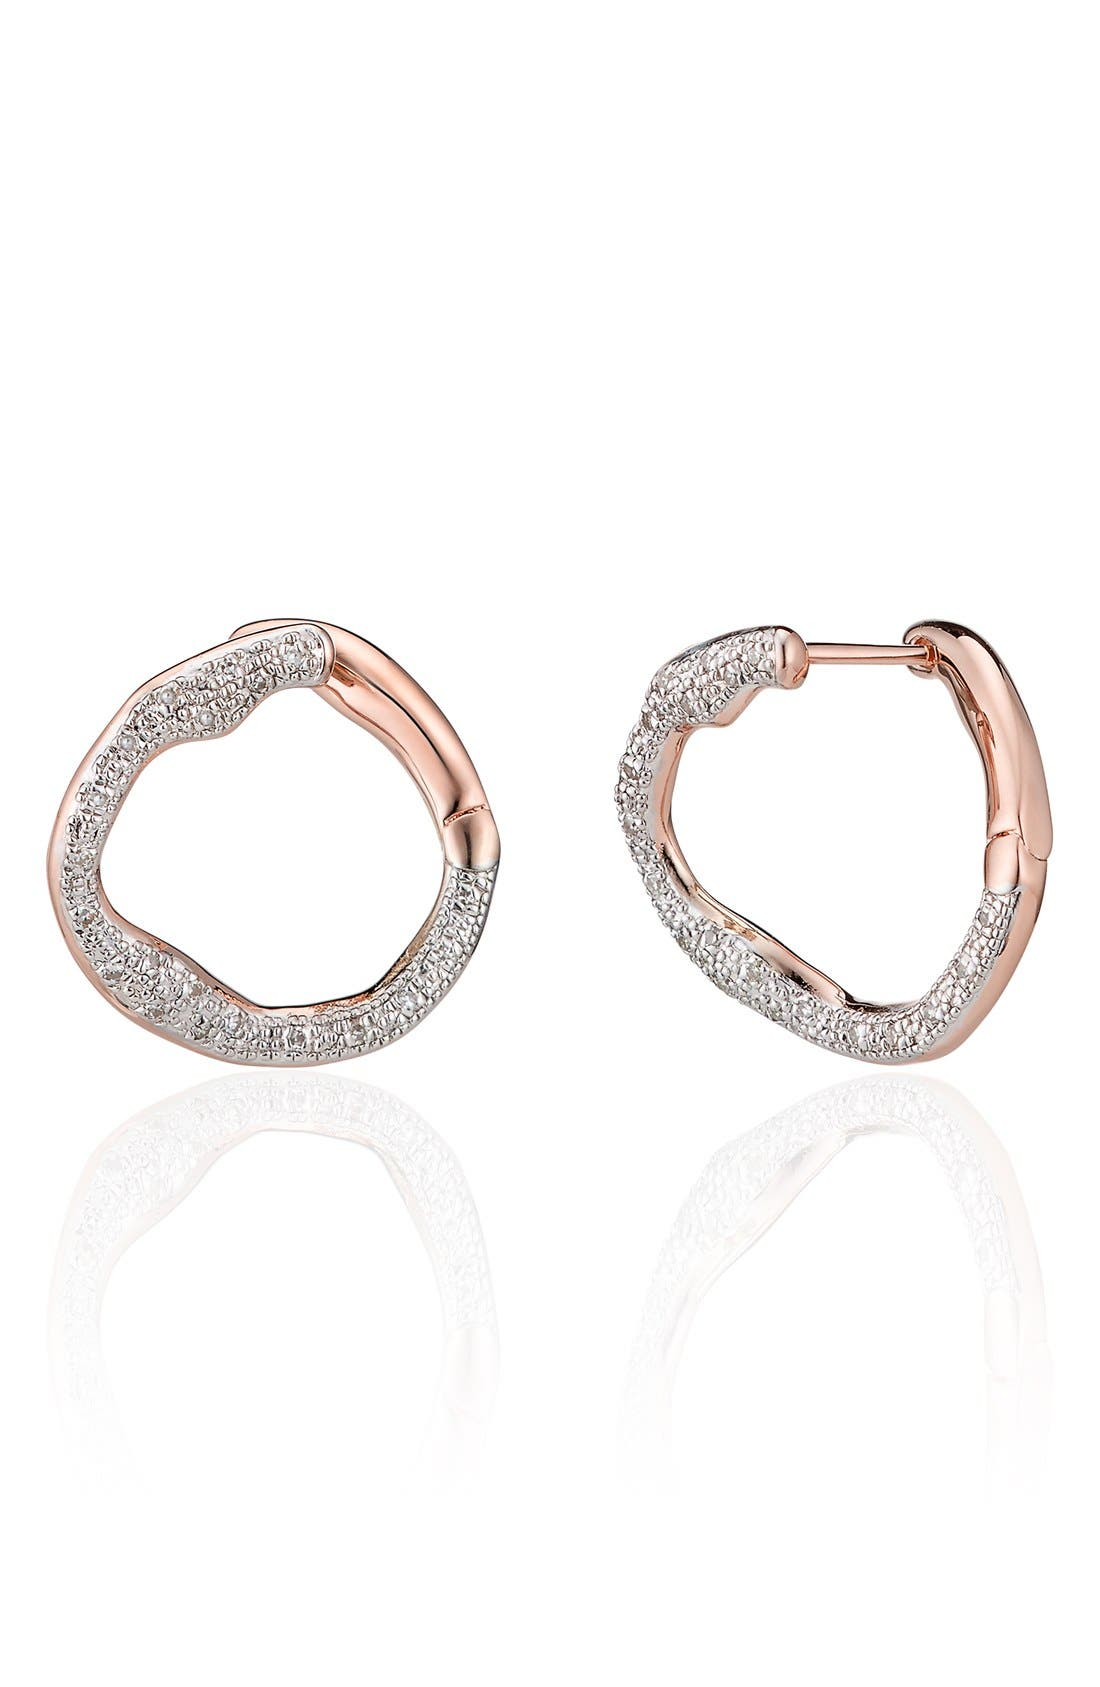 Monica Vinader 'Riva' Diamond Stud Earrings